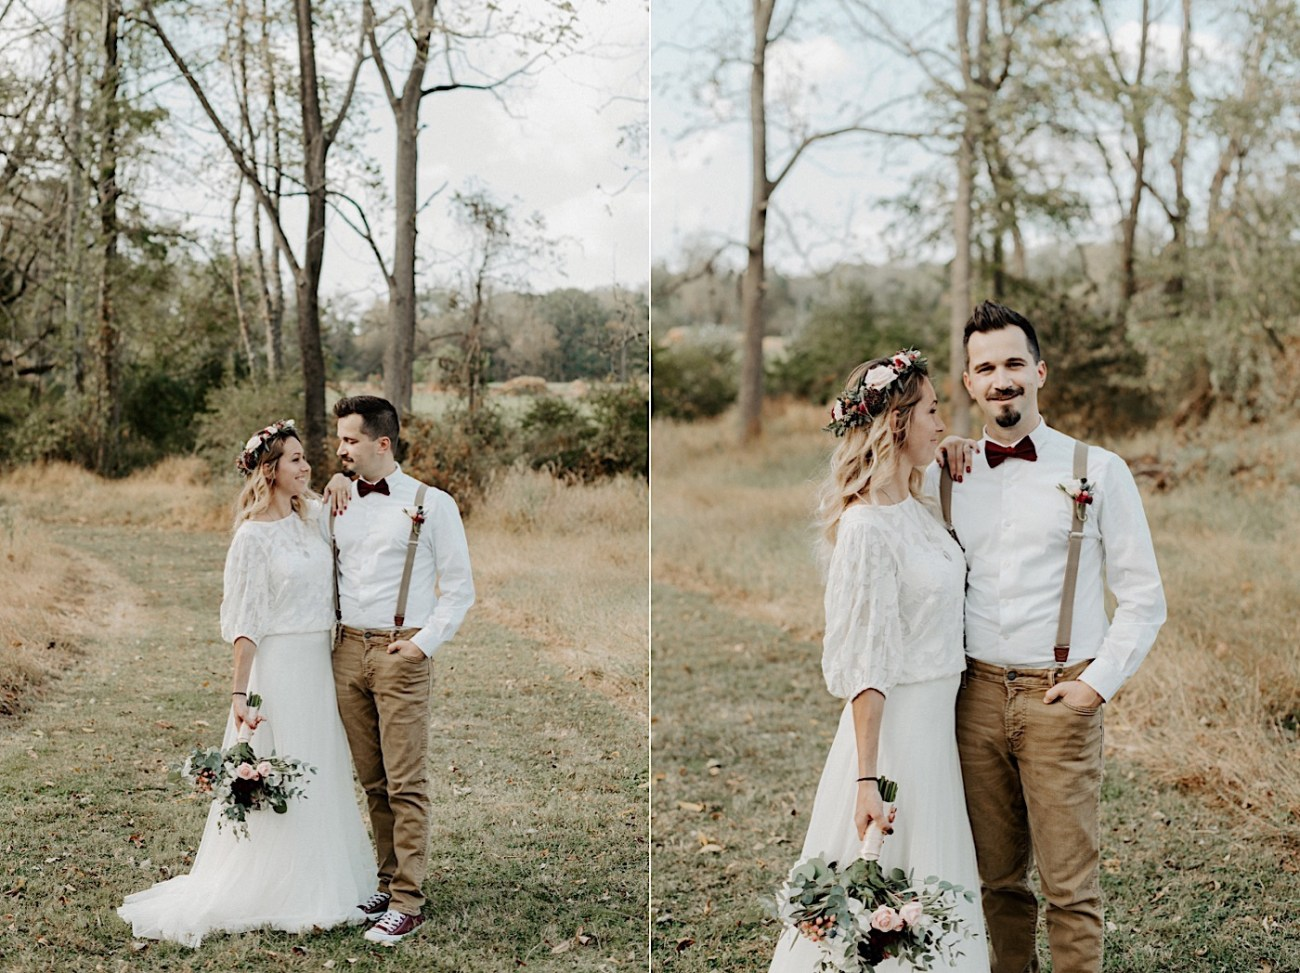 Woolverton Inn Elopement NJ Wedding Photographer Boho Wedding 011